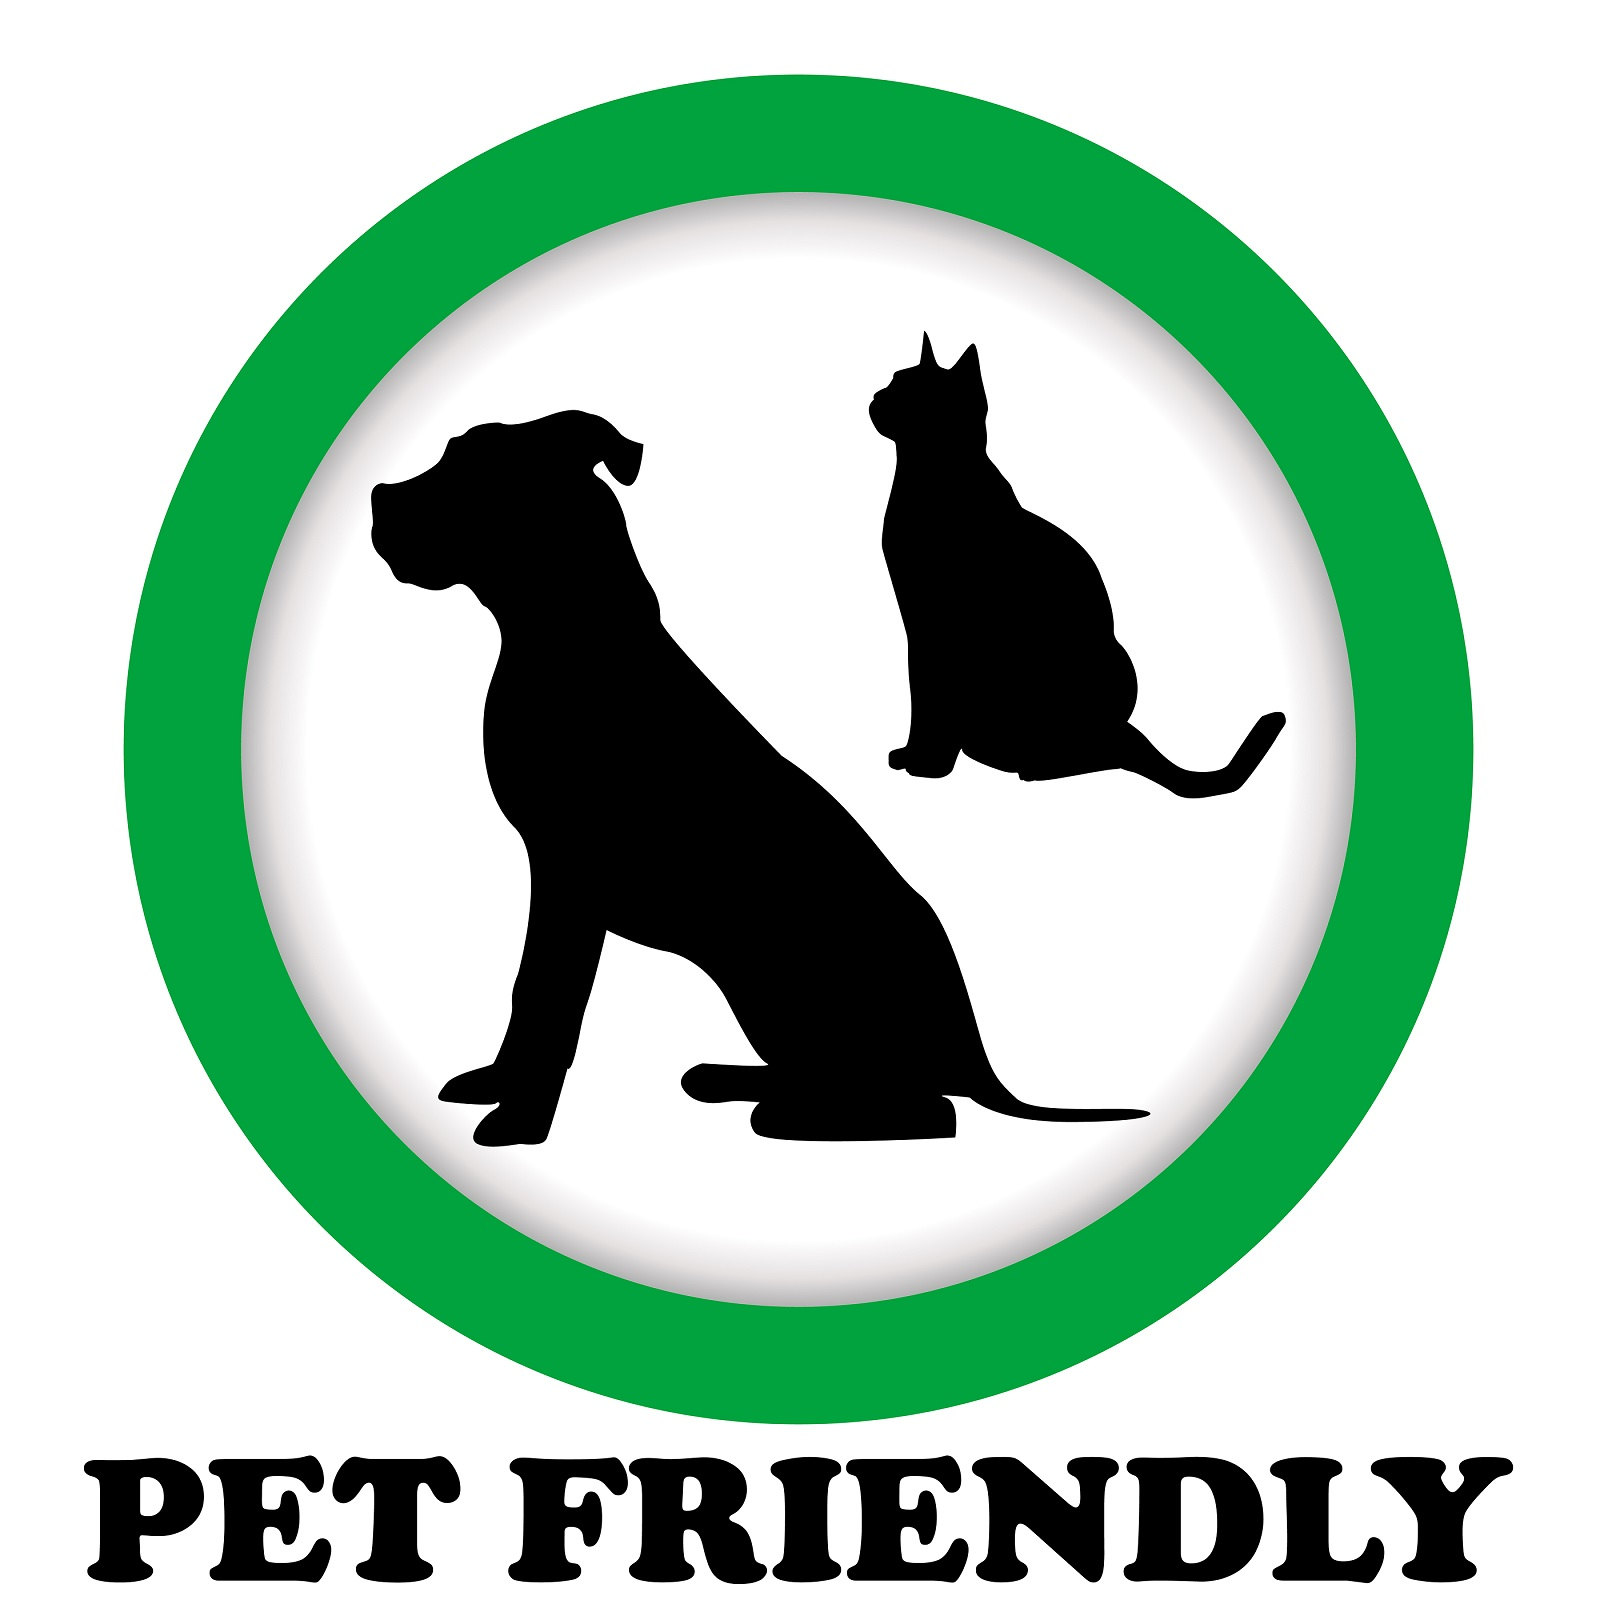 Pet friendly image for Jean-Luc Andriot website 052918